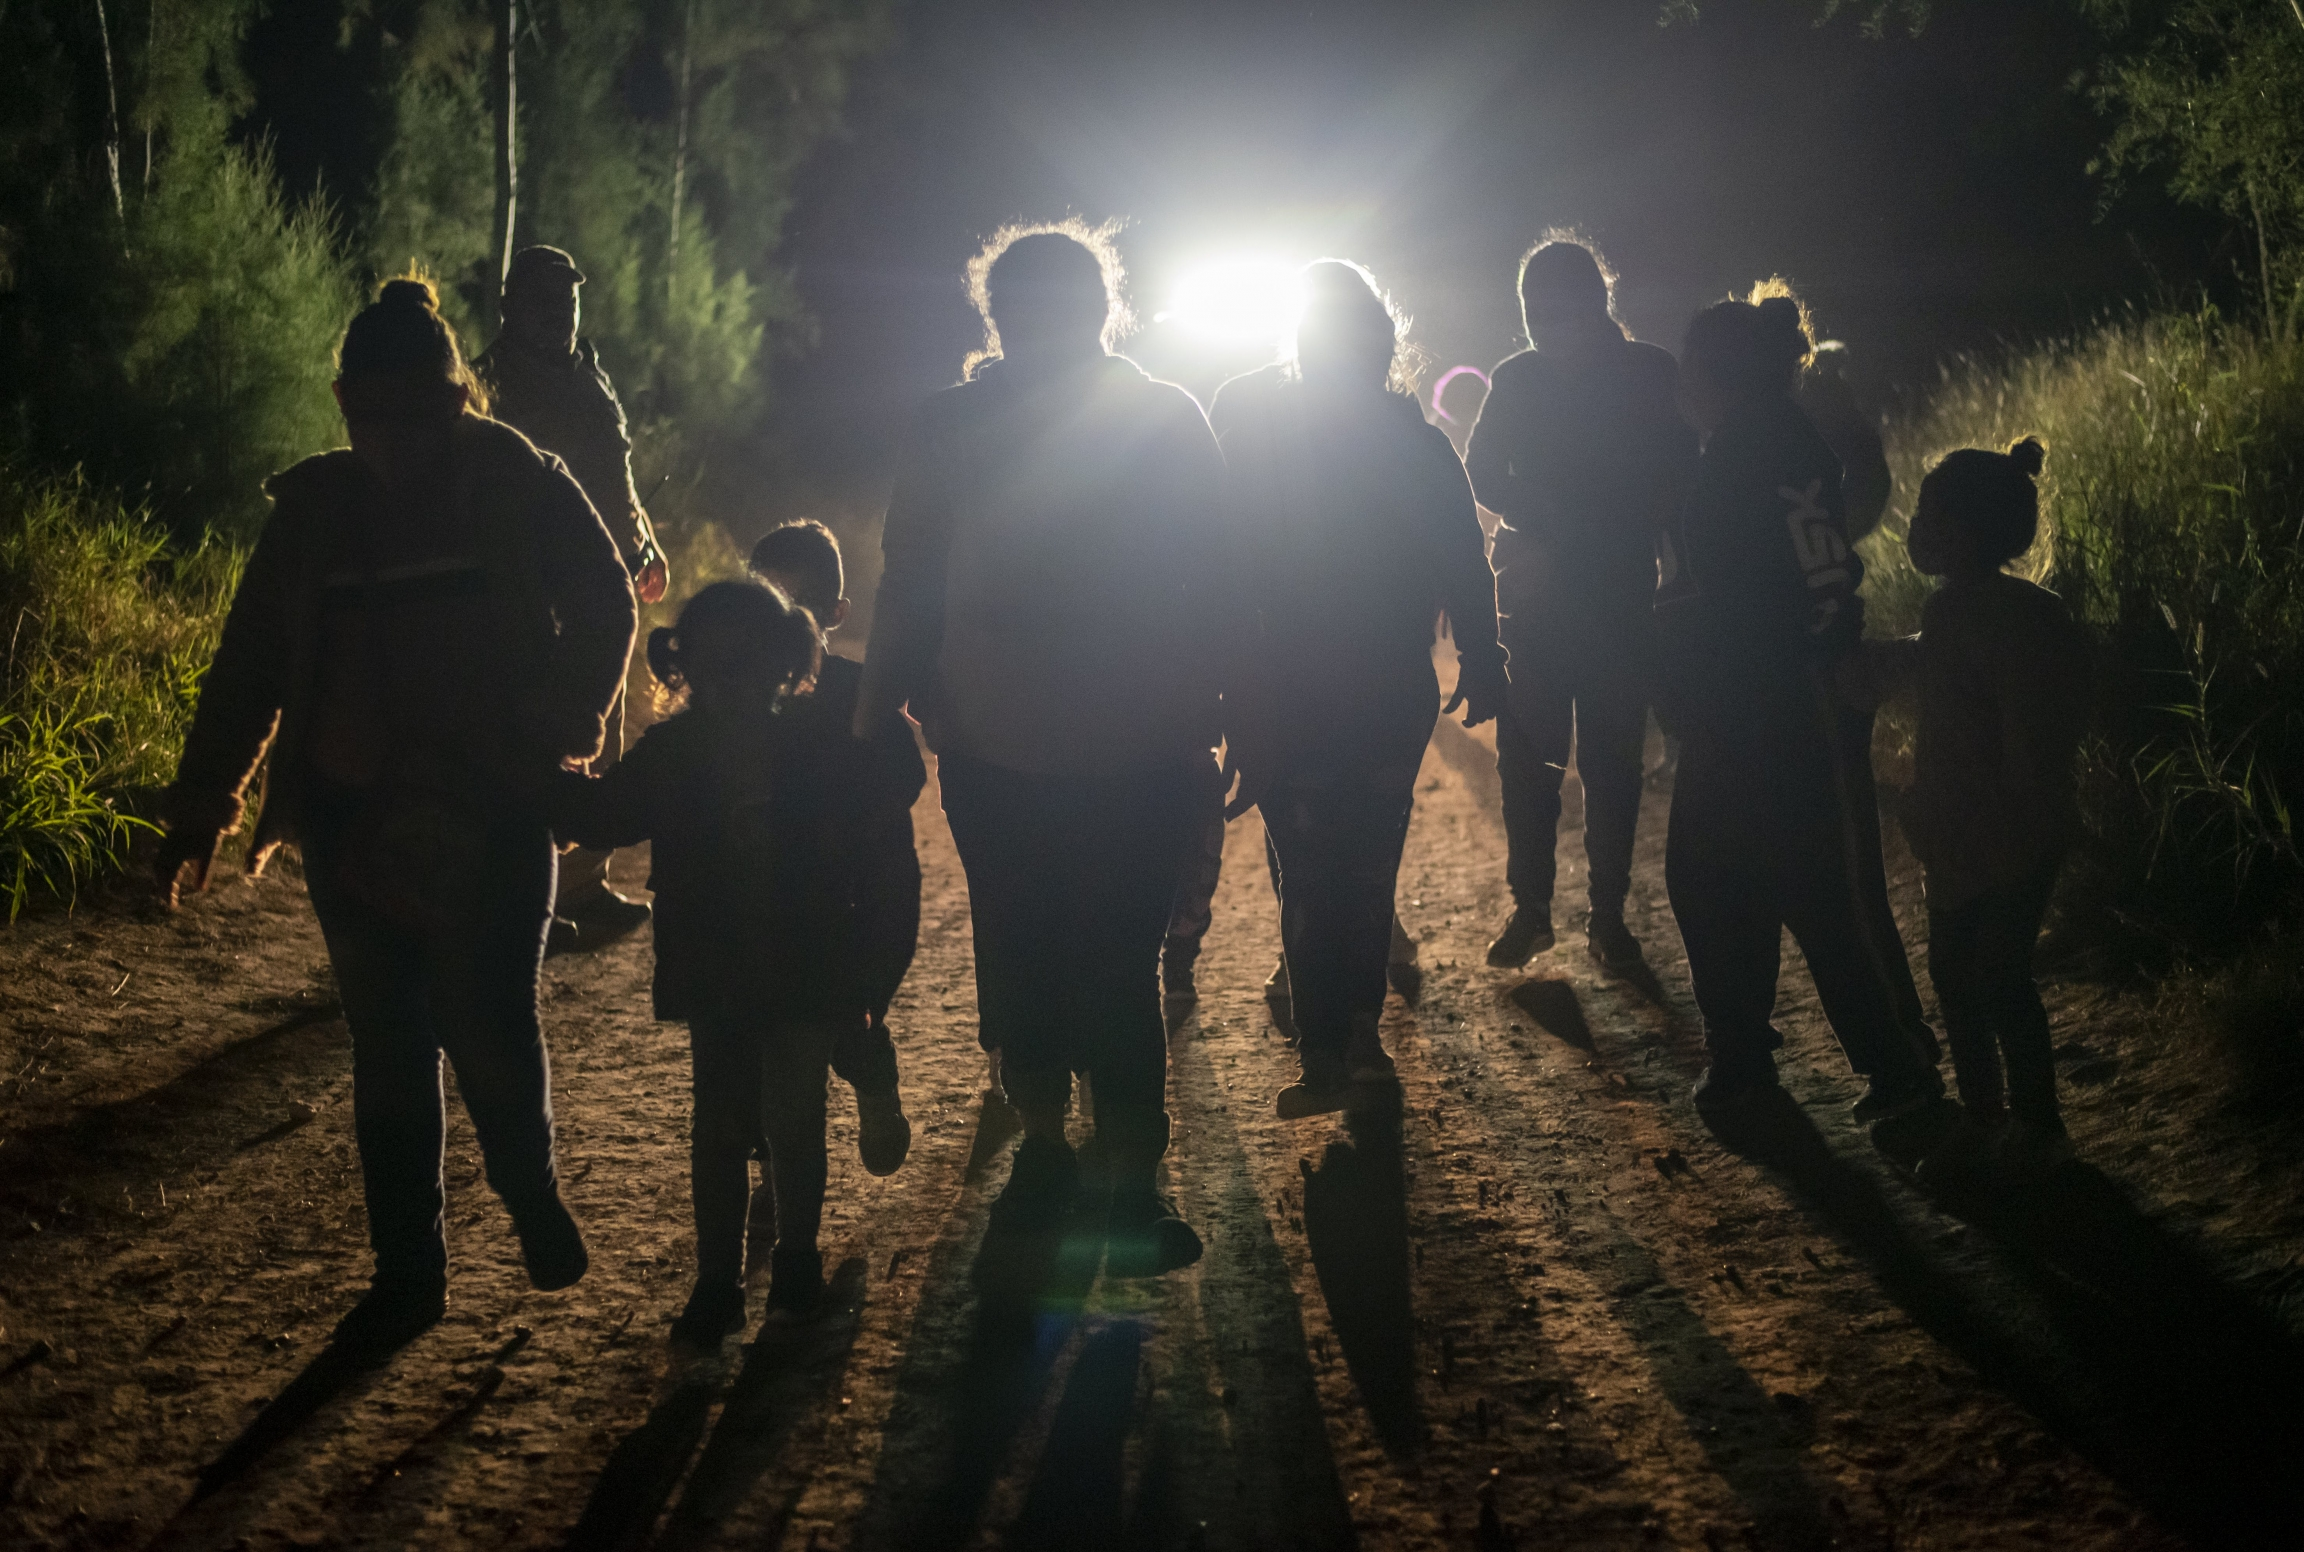 A group of noncitizens crossing the border at night, silhouetted against a light